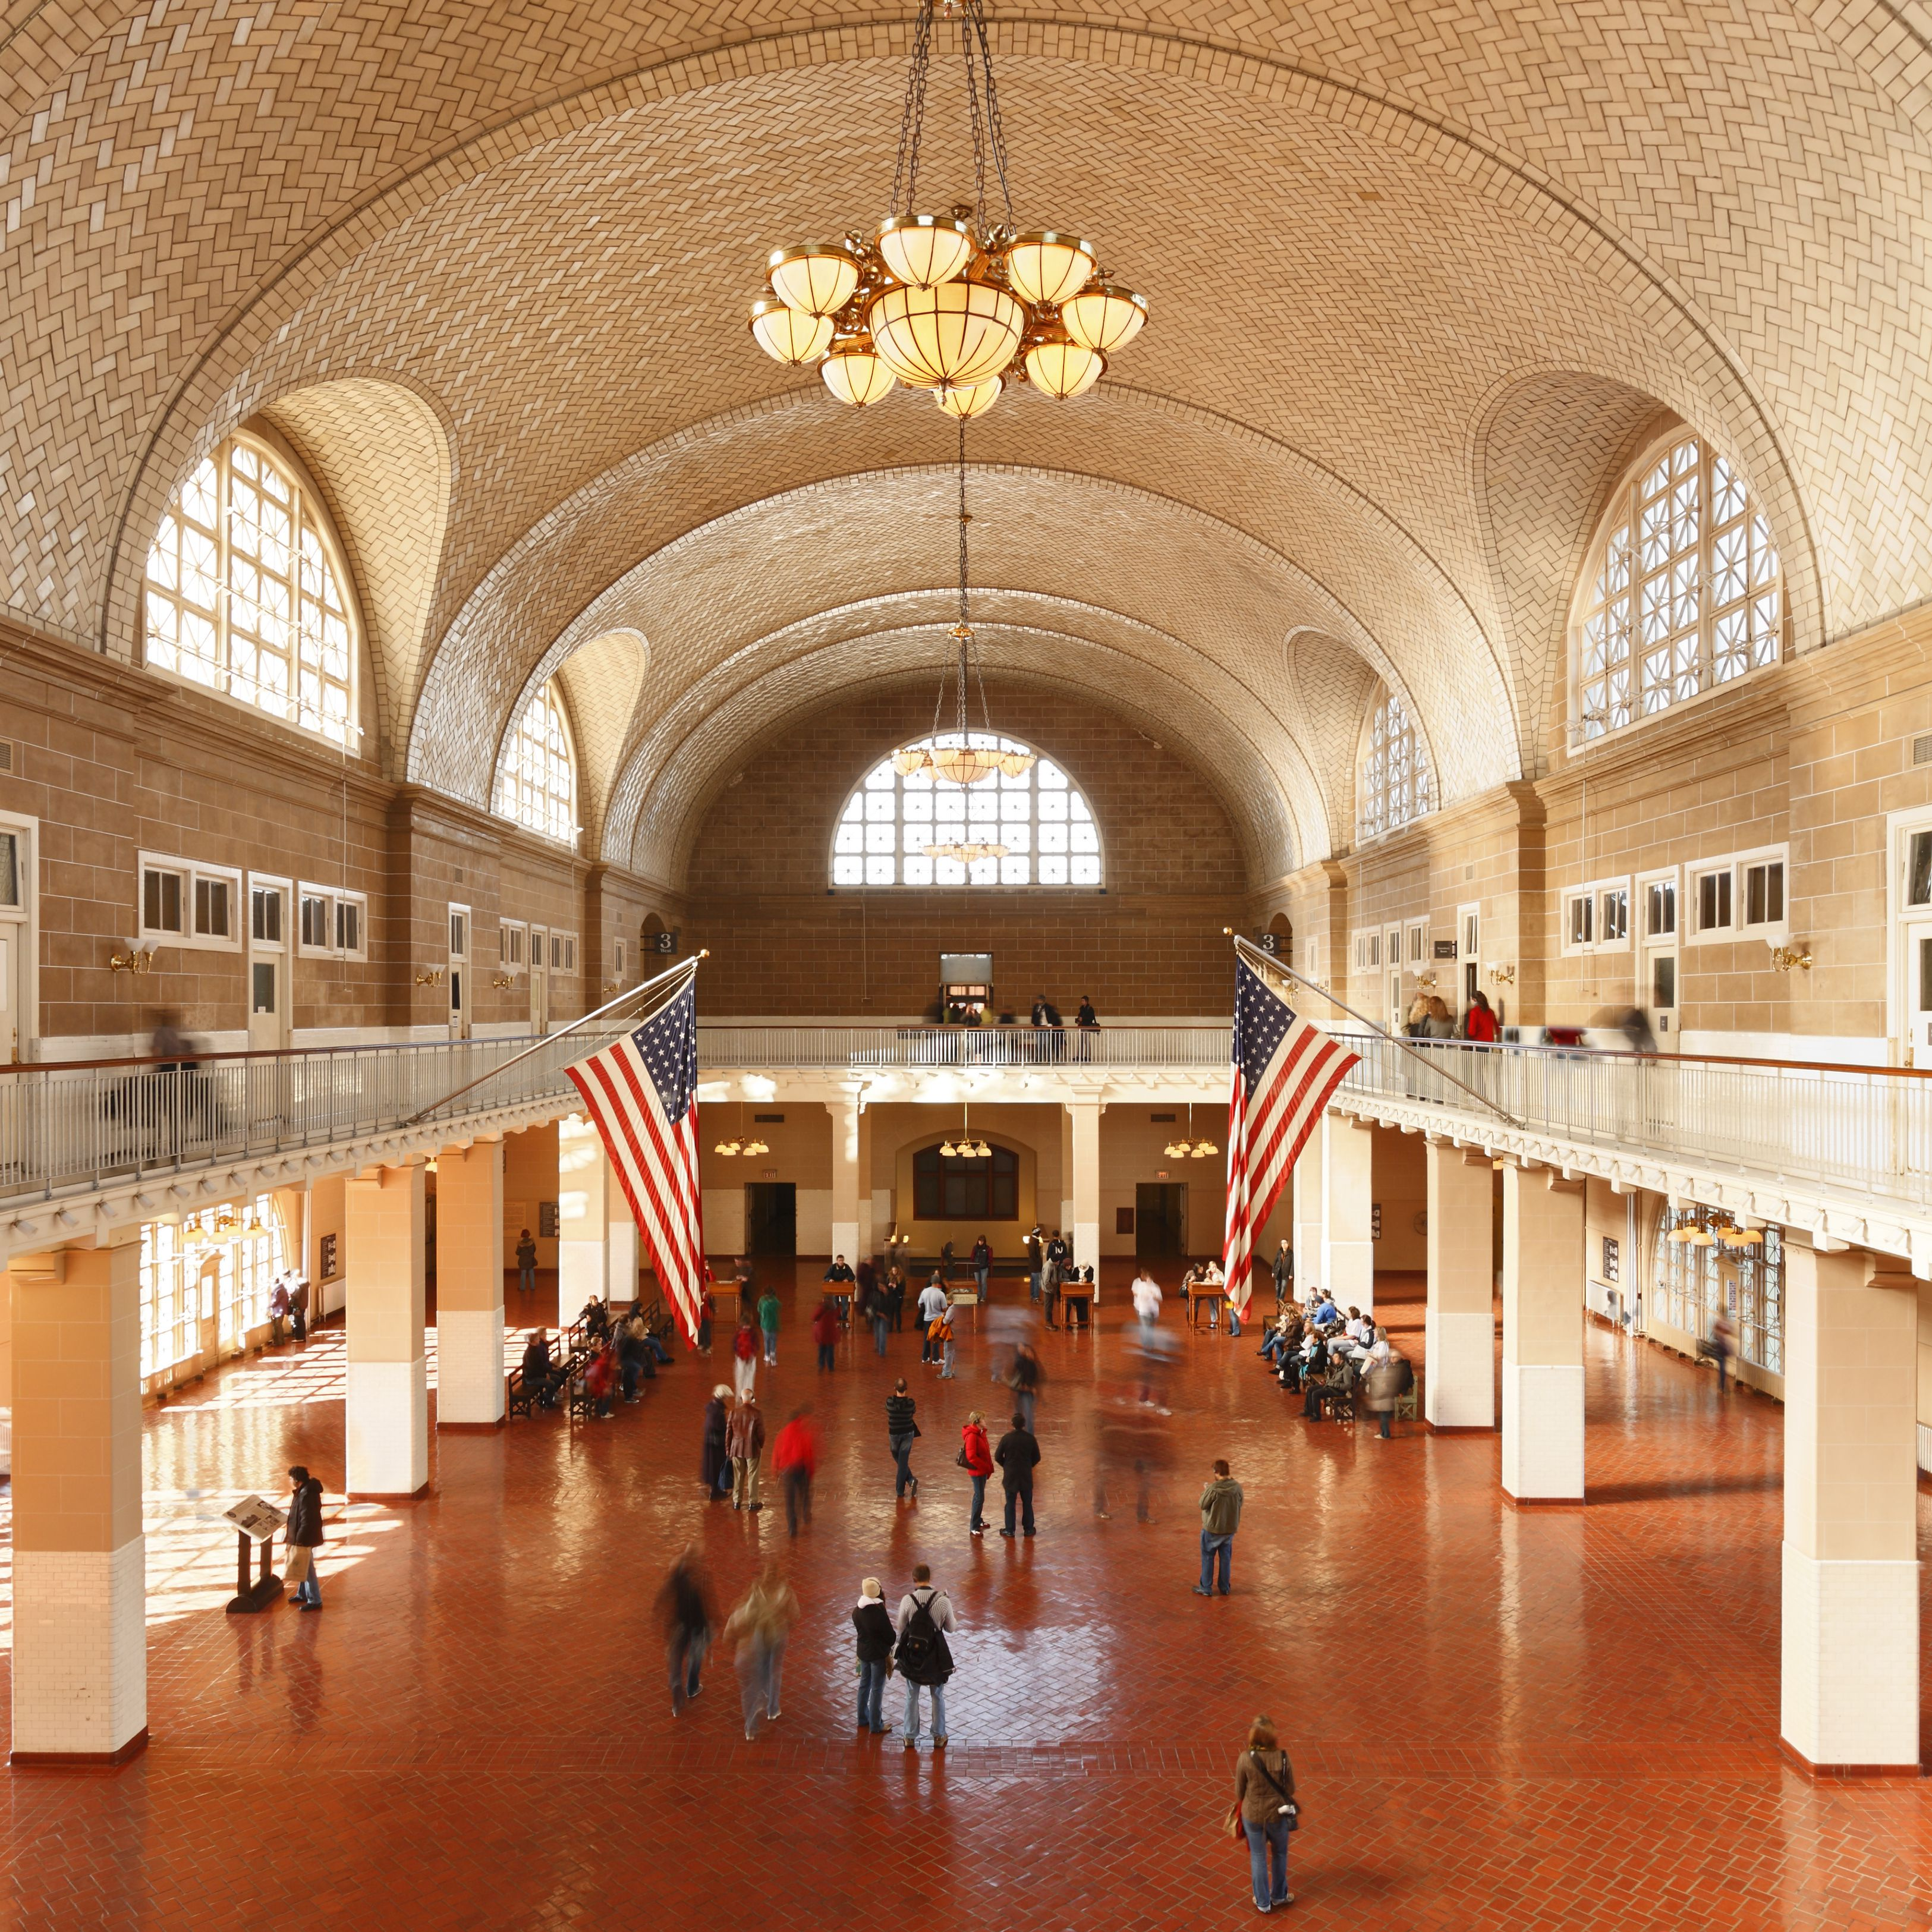 10 Tips For Visiting Ellis Island Immigration Museum